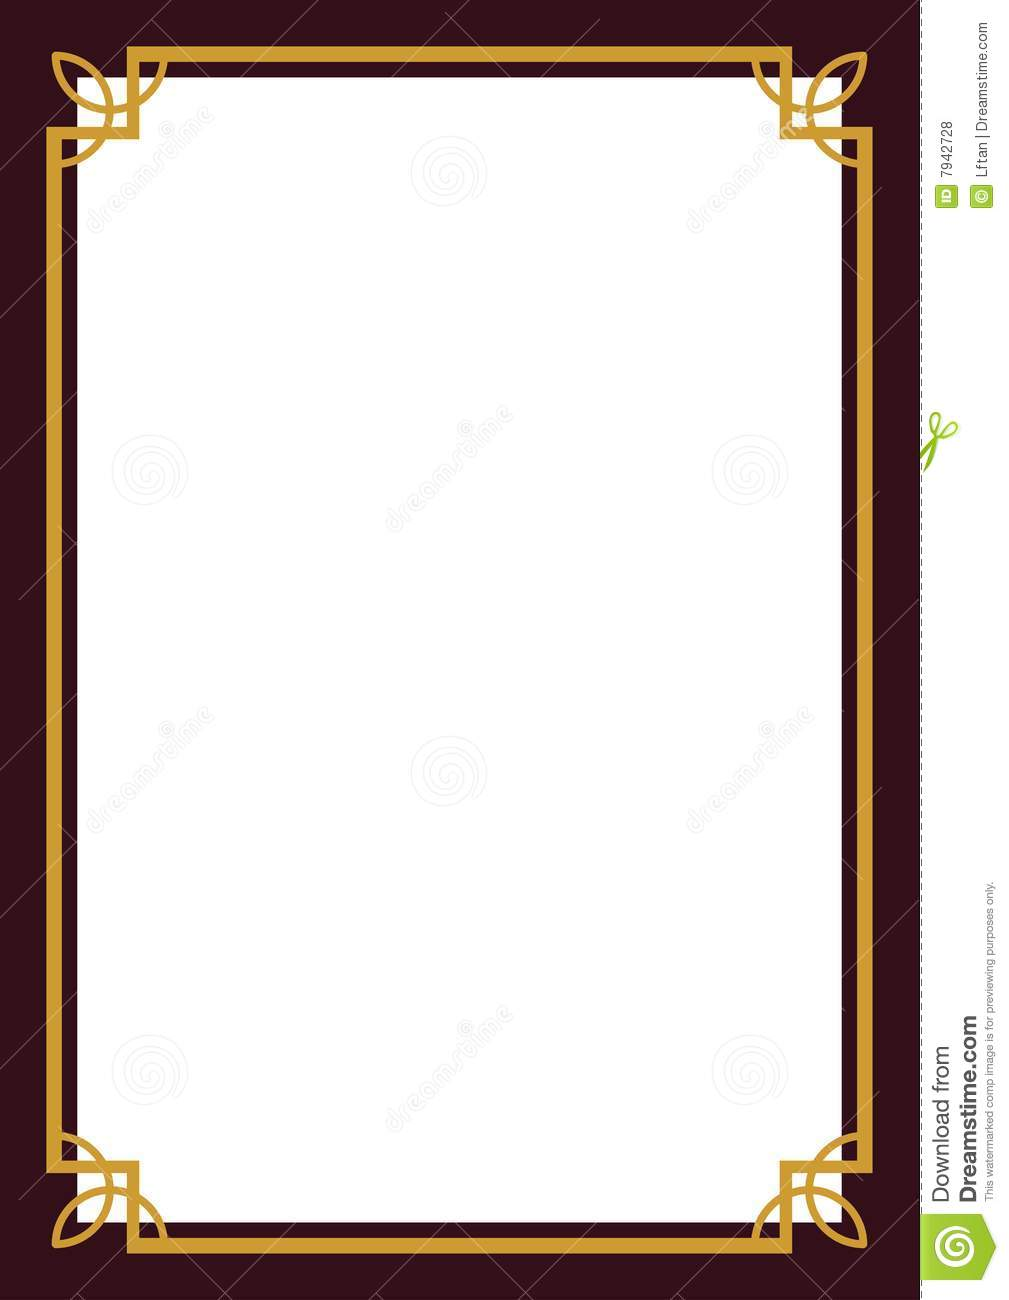 certificate border stock vector illustration of vector 7942728 rh dreamstime com certificate border vector download certificate border vector eps free download